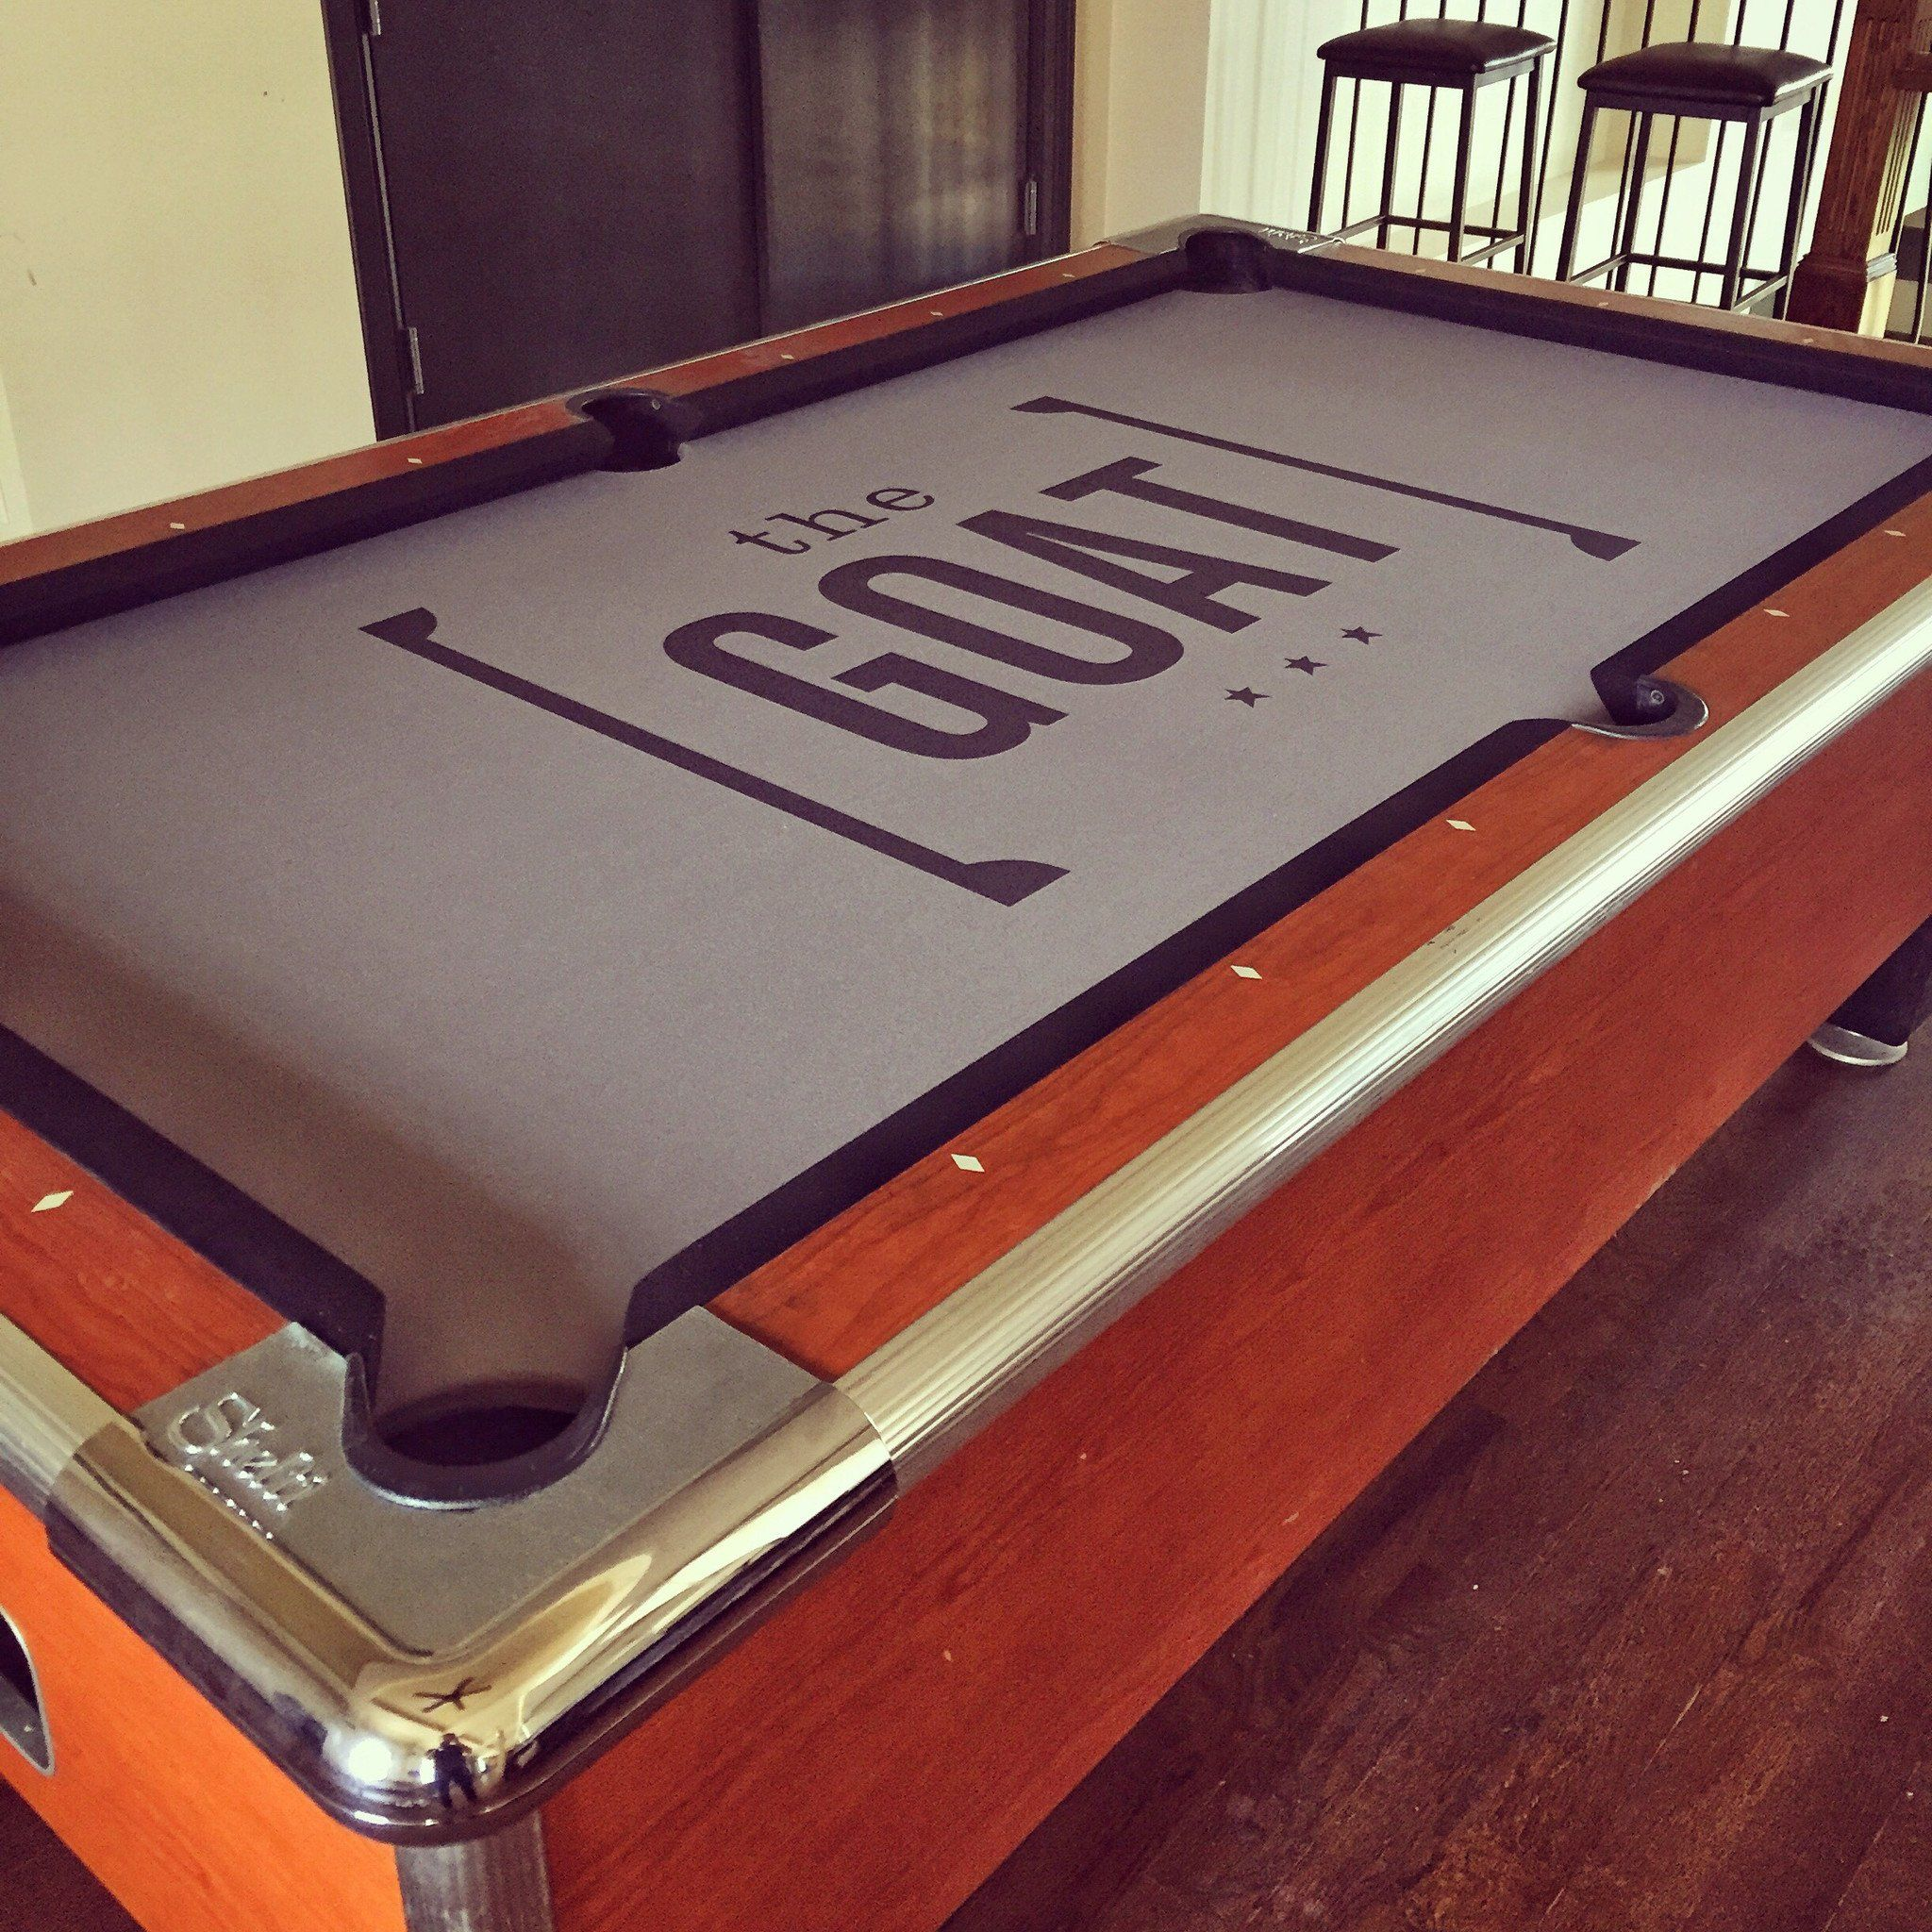 Custom Pool Table Felt With Matching Rails Home Improvement - Pool table felt repair near me